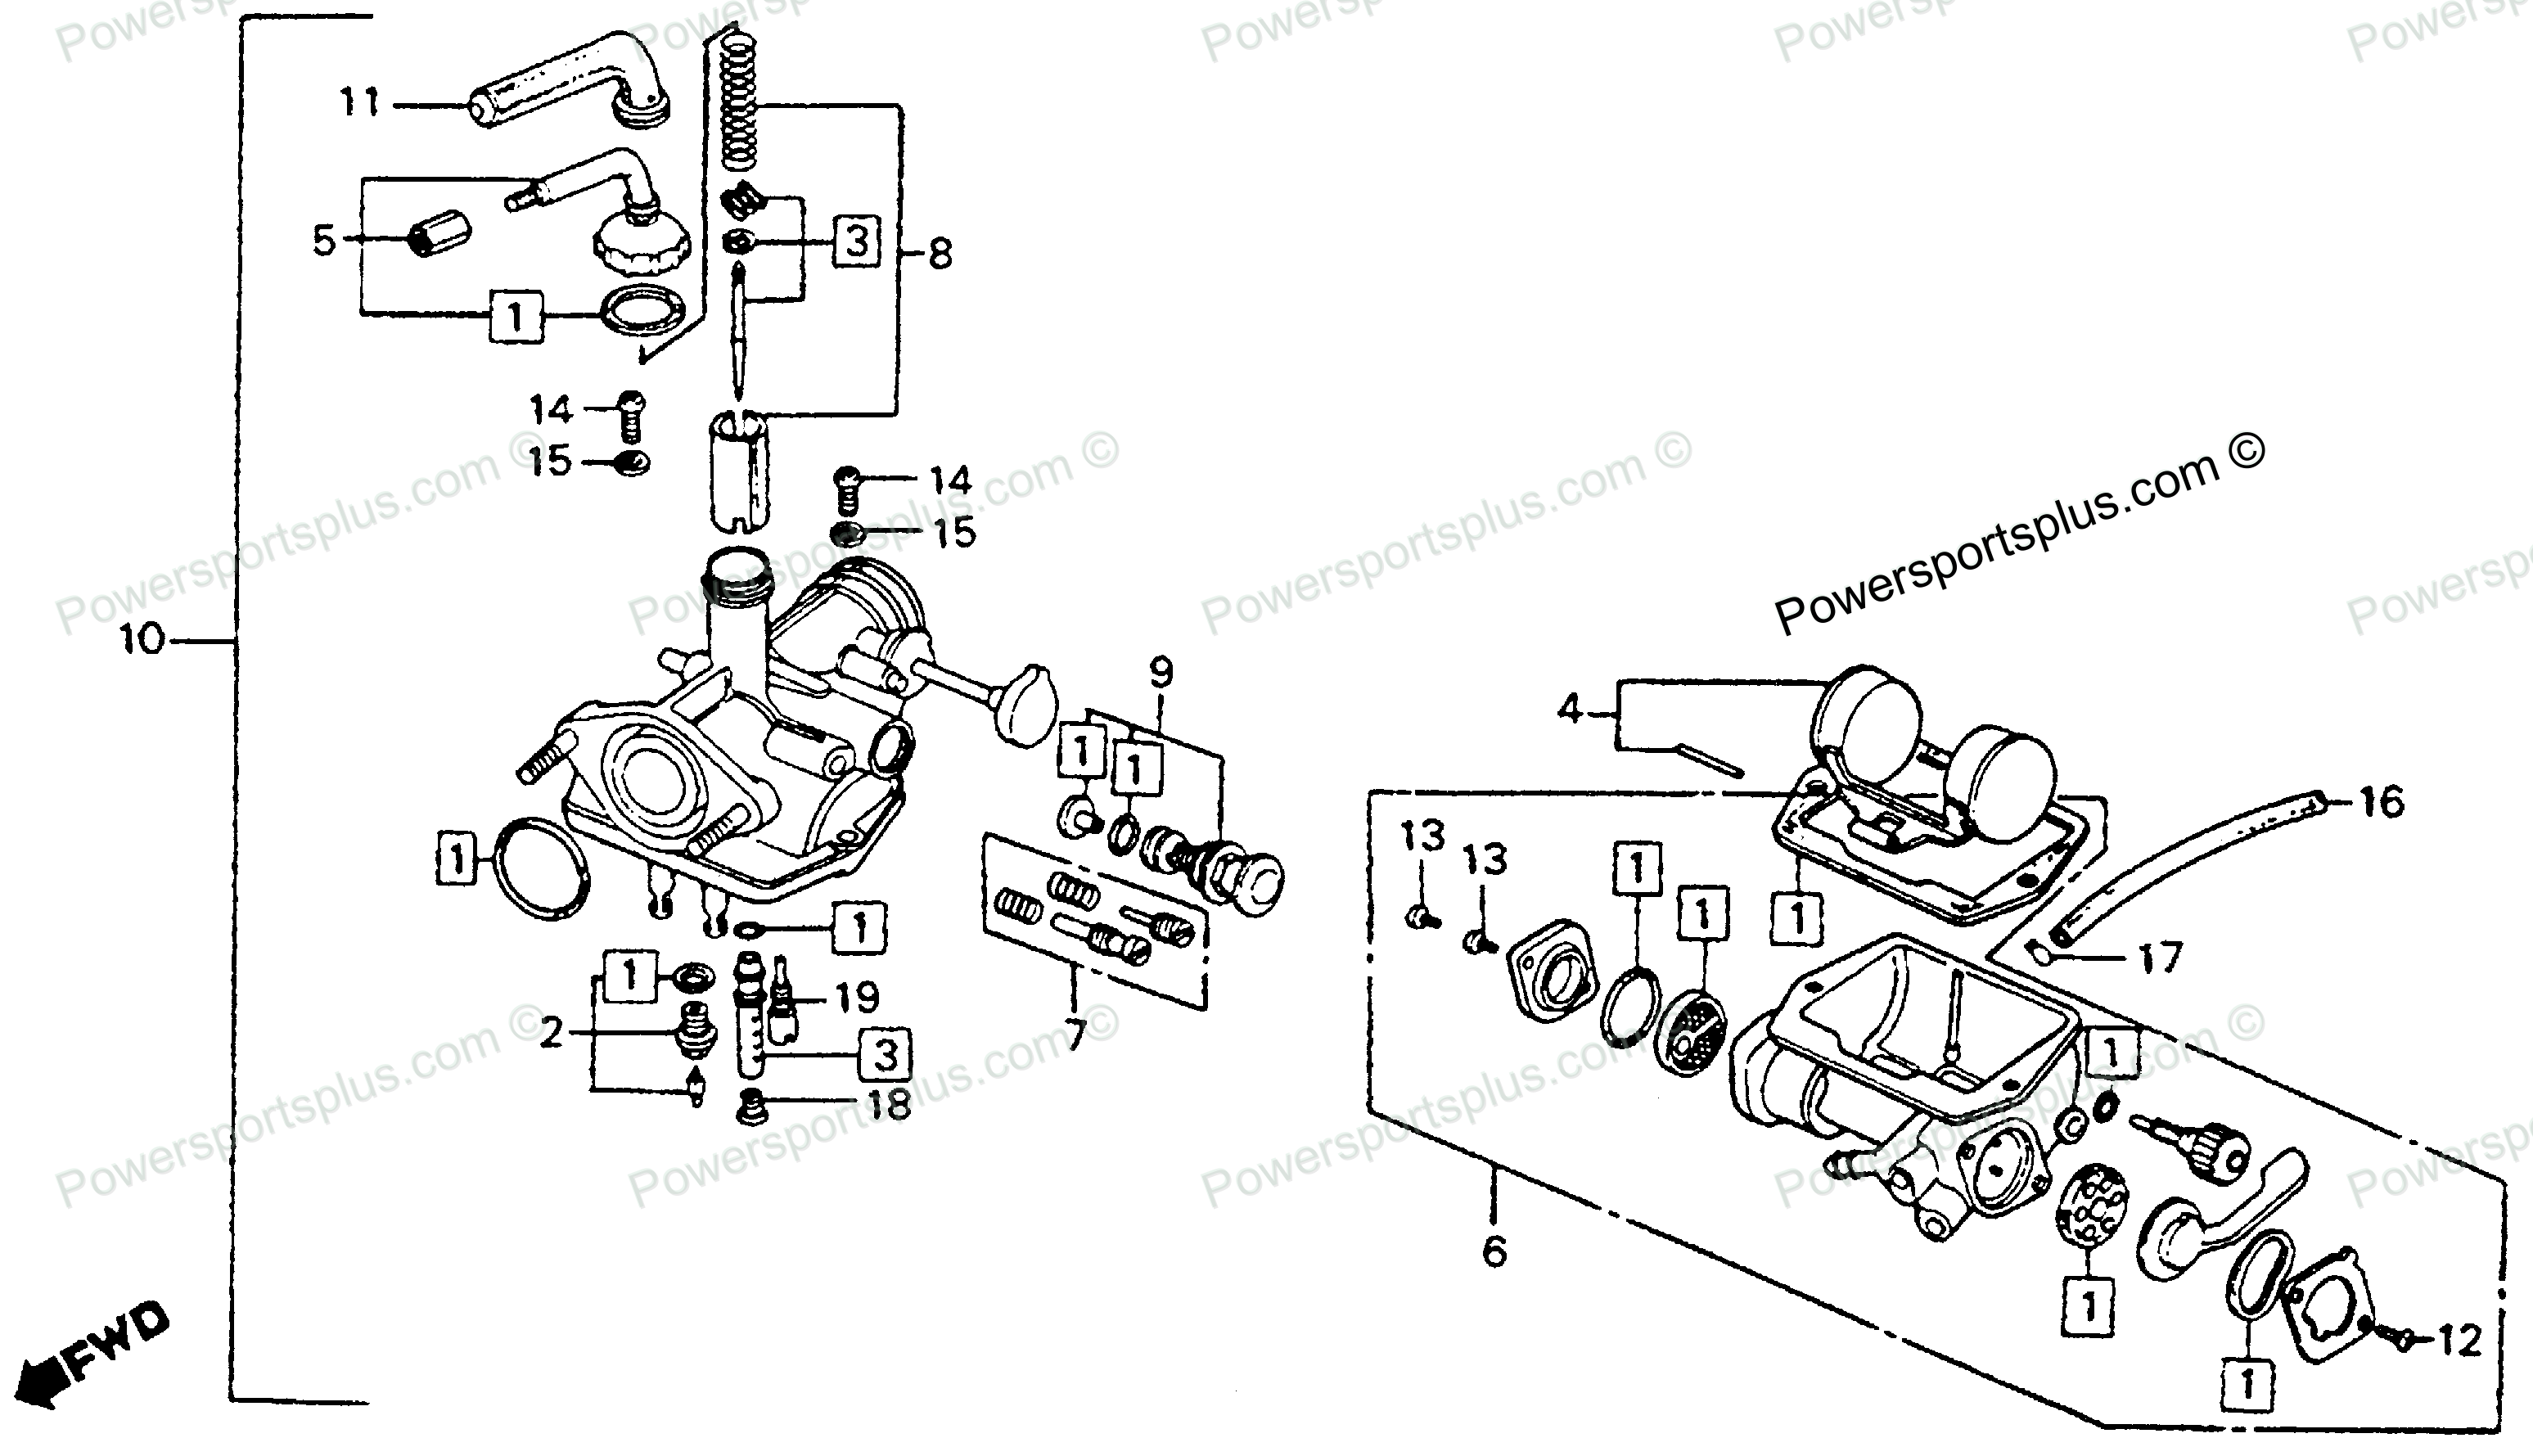 0efb18283ae24d7a2627632be070cf5c diagram of honda motorcycle parts 1976 ct90 a carburetor k6 77 honda motorcycles parts diagram at readyjetset.co